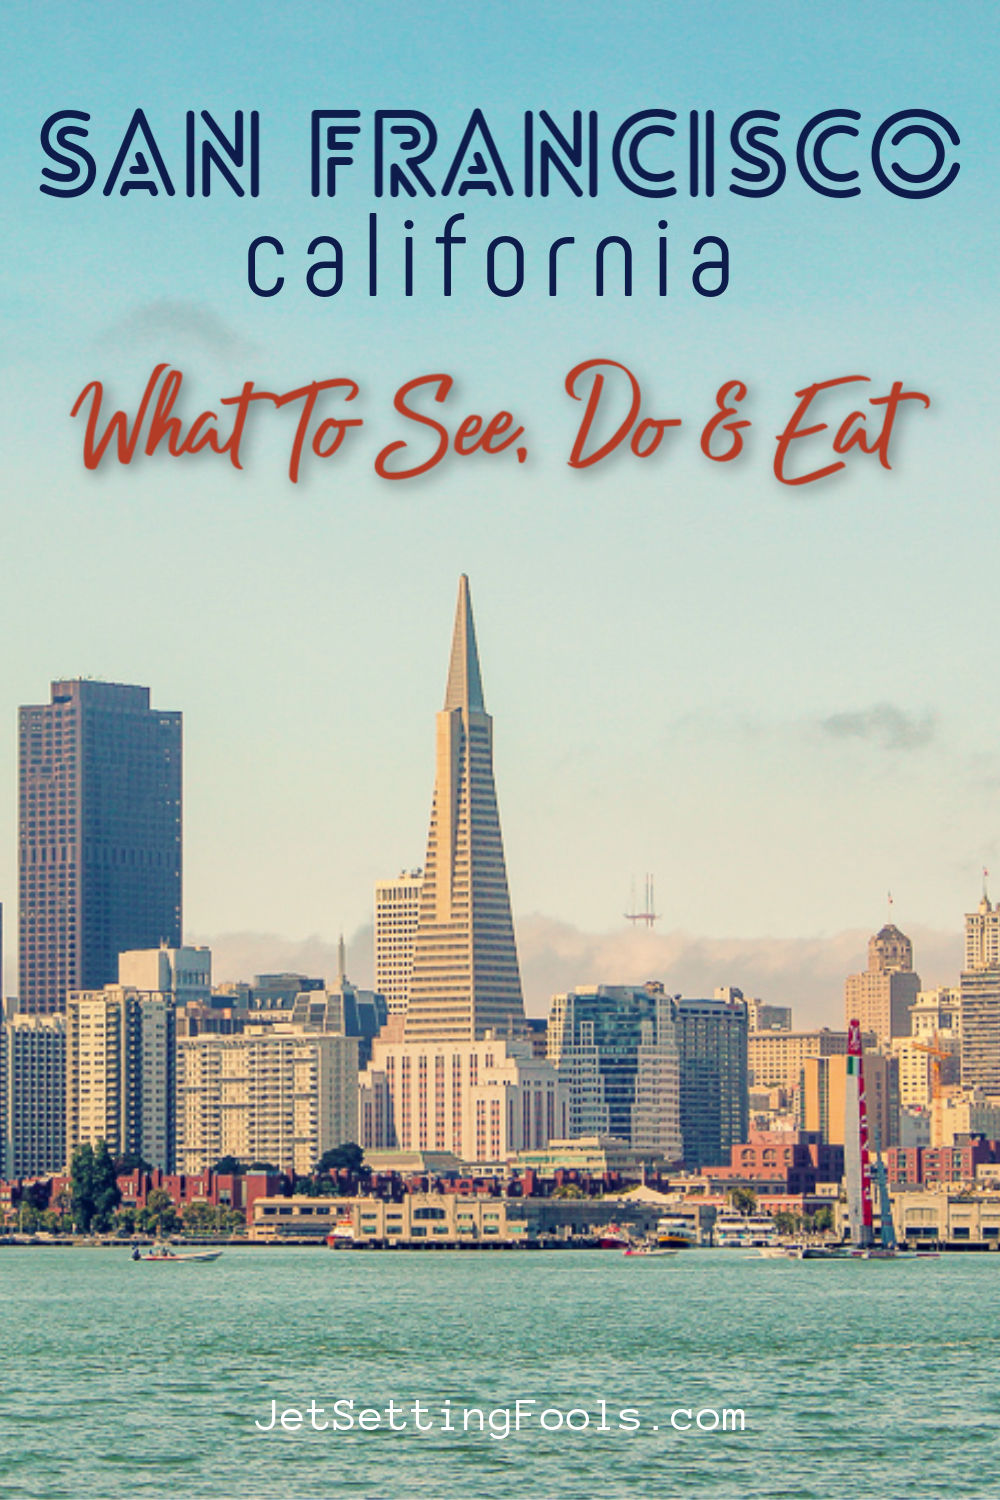 San Francisco What To See Do and Eat by JetSettingFools.com